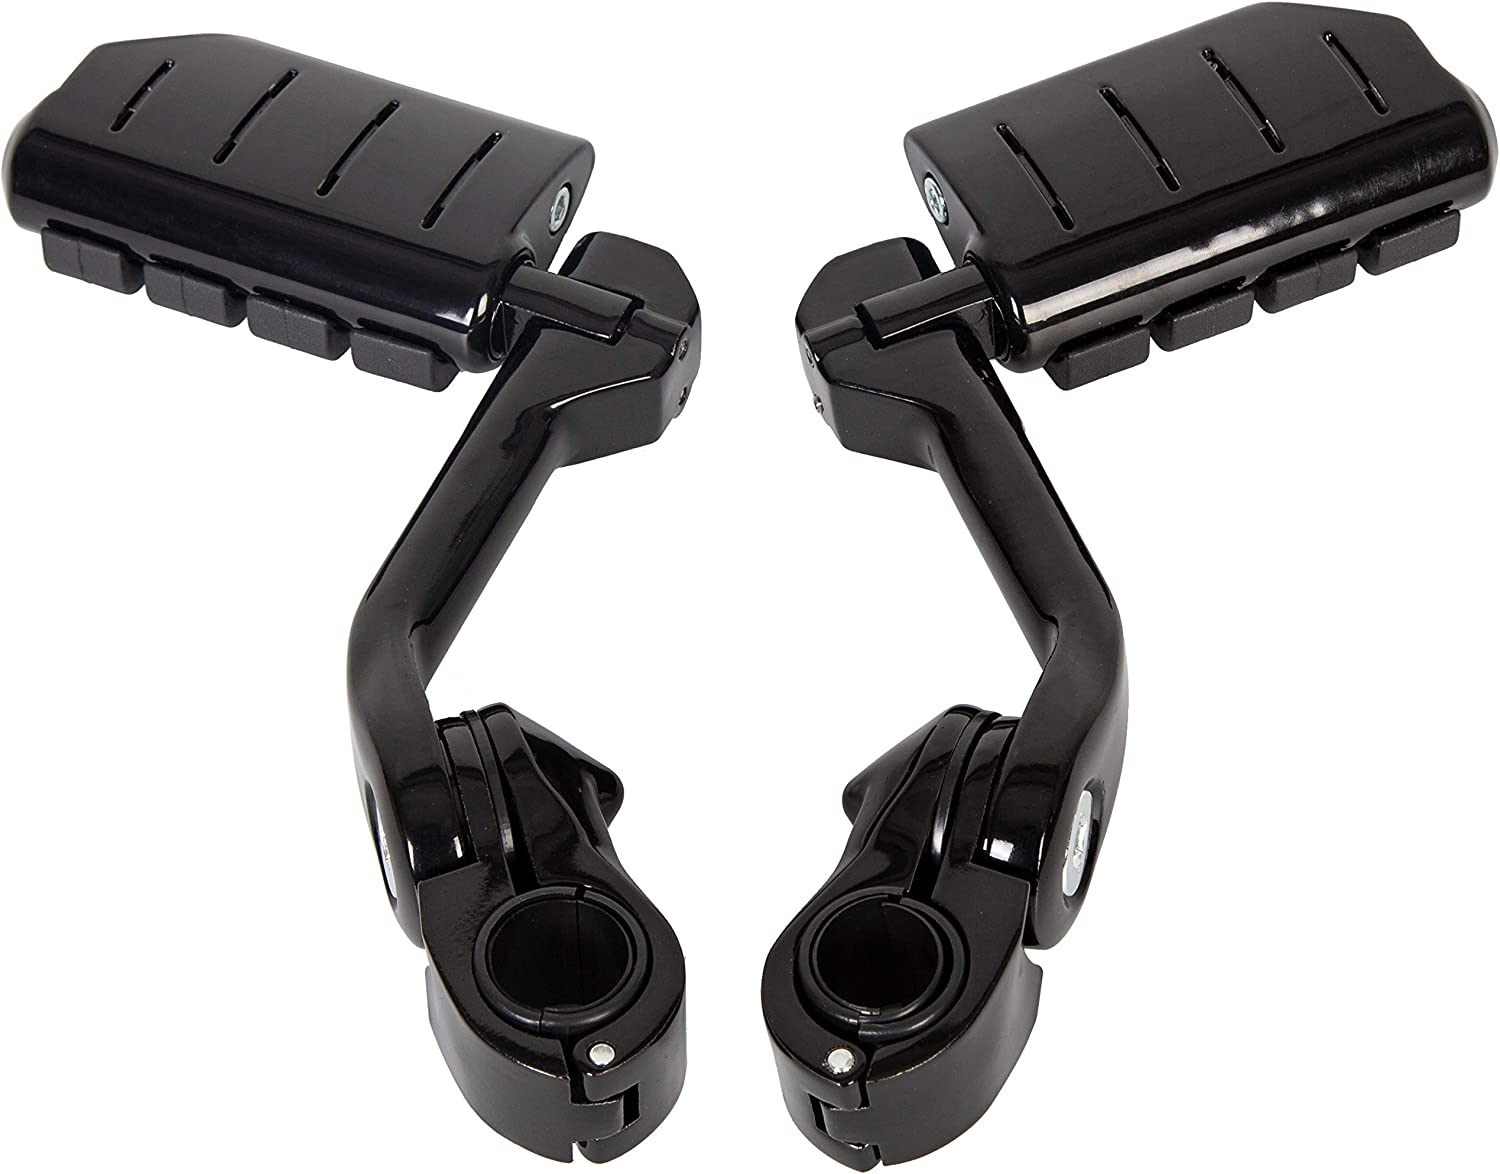 1 1//4 Longhorn Highway Pegs Footpegs Pedal With Quick Clamps Fits Motorcycle Crash Bar Engine Guards Mount Tubing Compatible With Harley Davidson Road King Street Glide Honda Suzuki Kawasaski 1 Pair